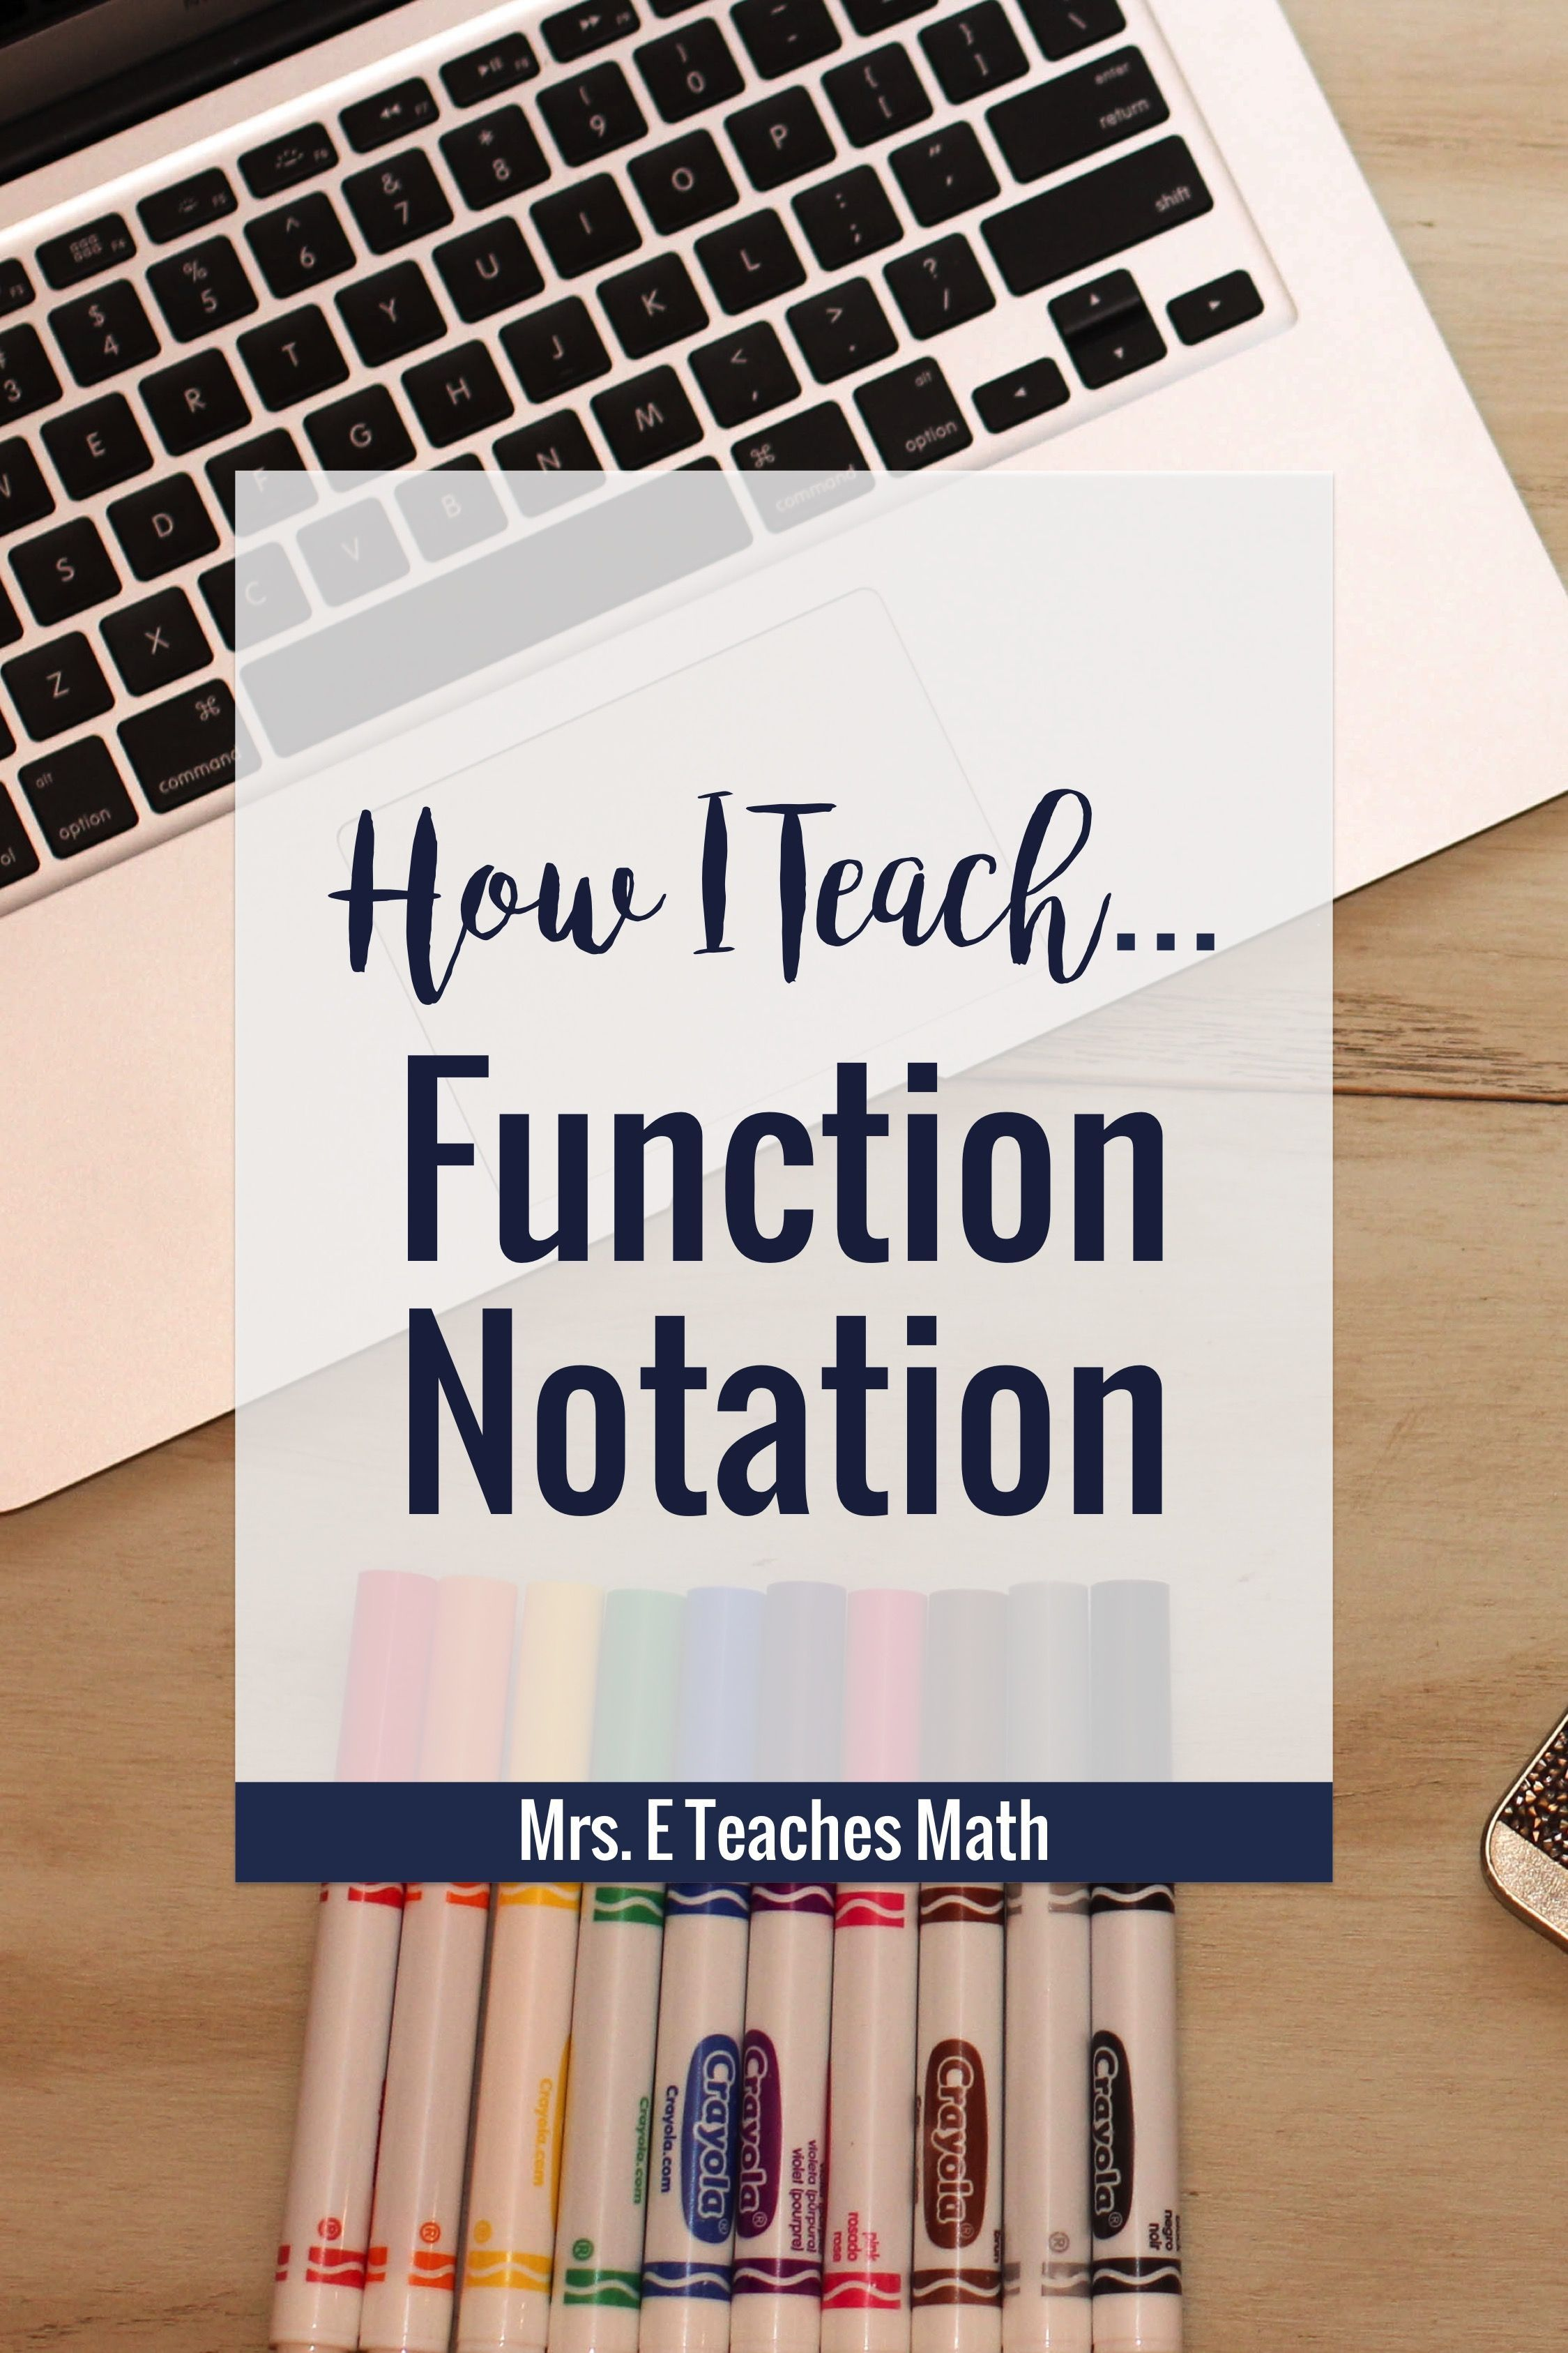 How I Teach Function Notation